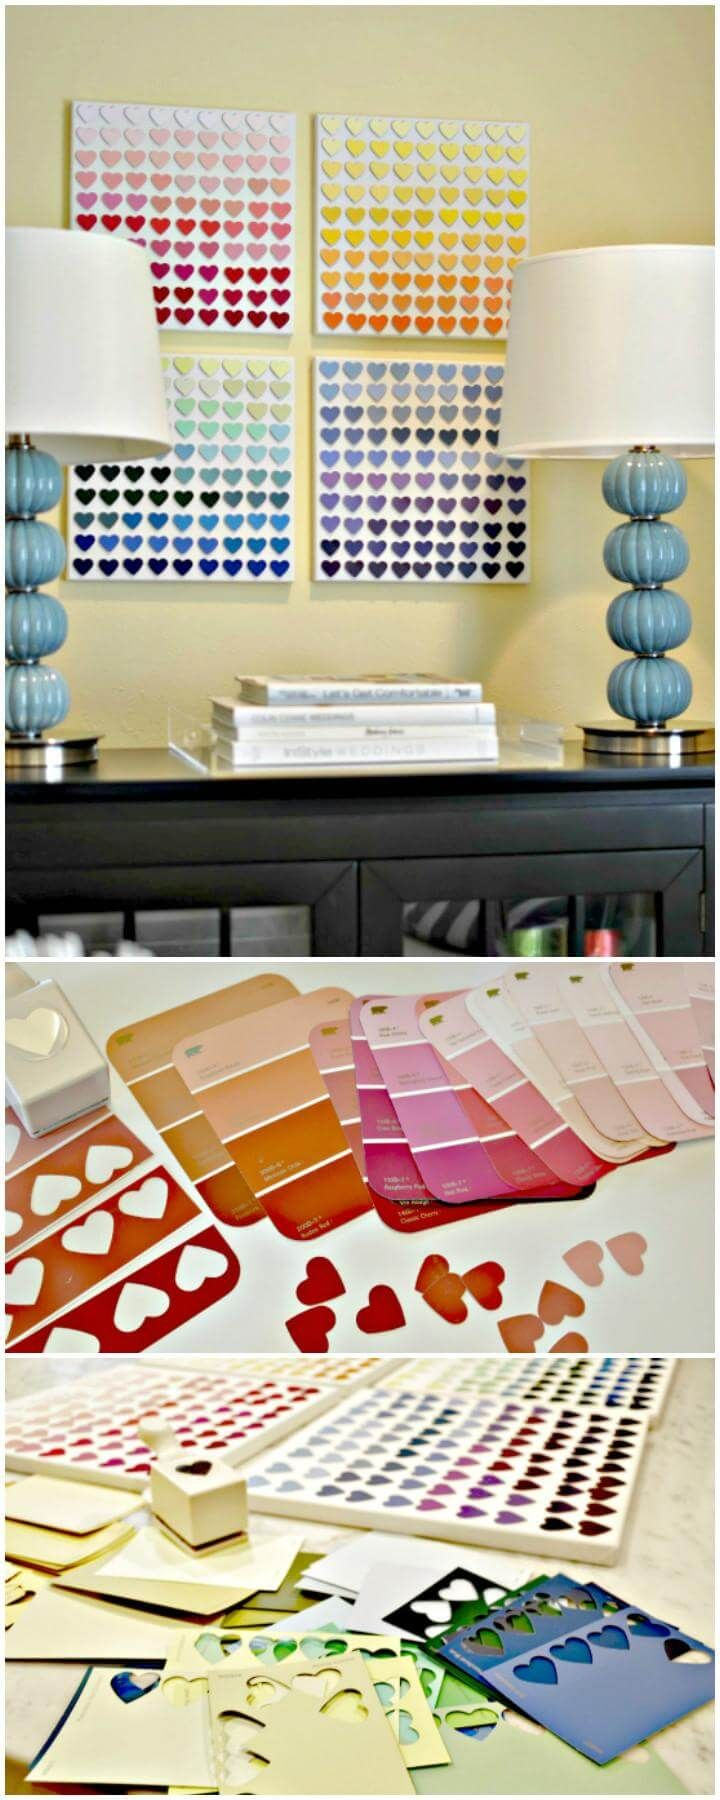 200 Best DIY Craft Ideas and Projects for Teen Girls   – Bday party ideas